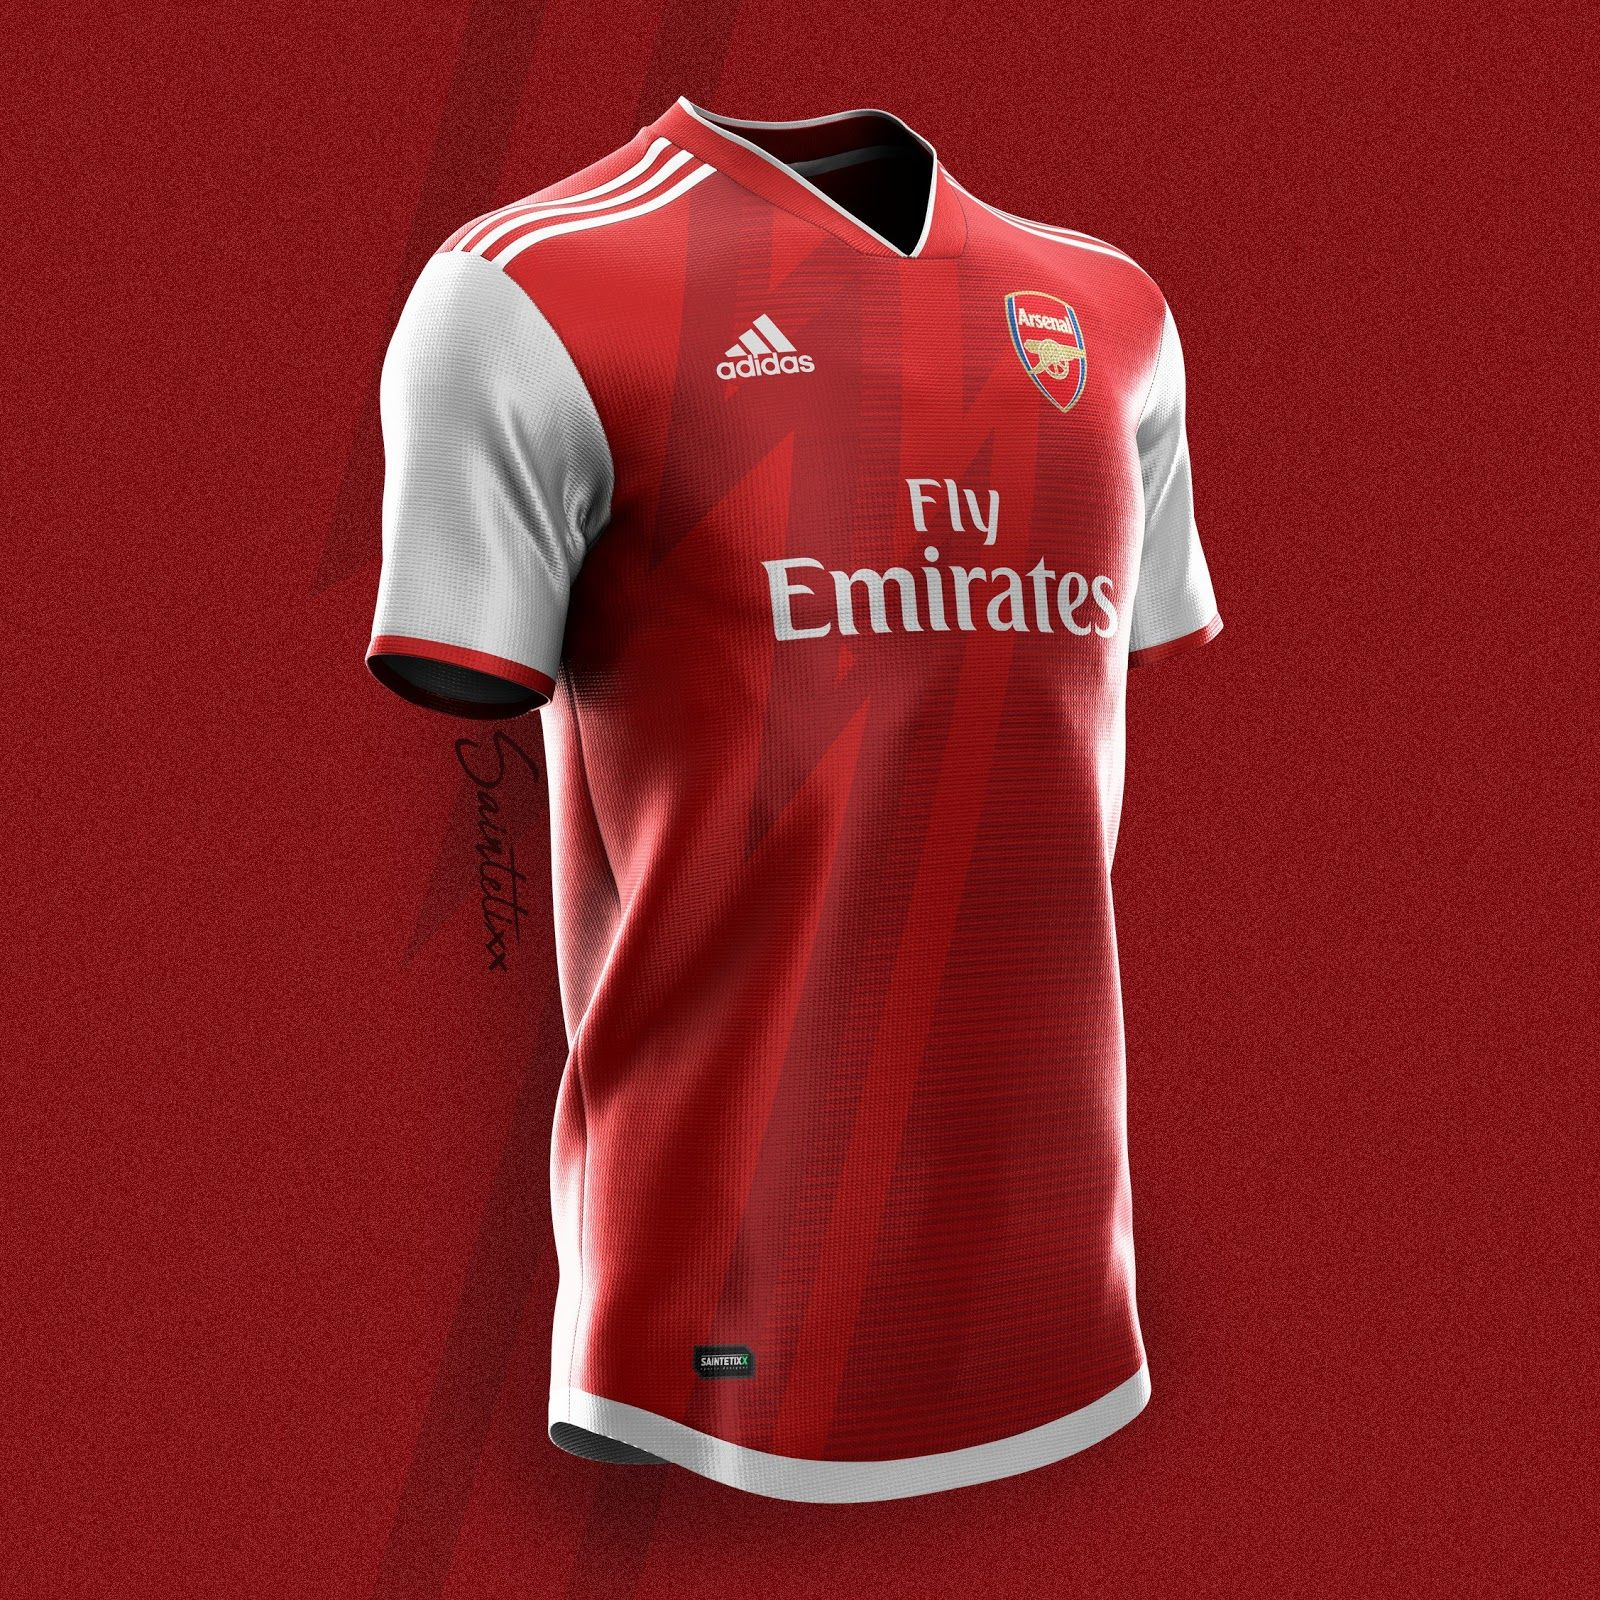 Adidas Arsenal 19 20 Home Away Third Kit Concepts By Saintetixx Footy Headlines Arsenal Jersey Sports Jersey Design Arsenal Kit